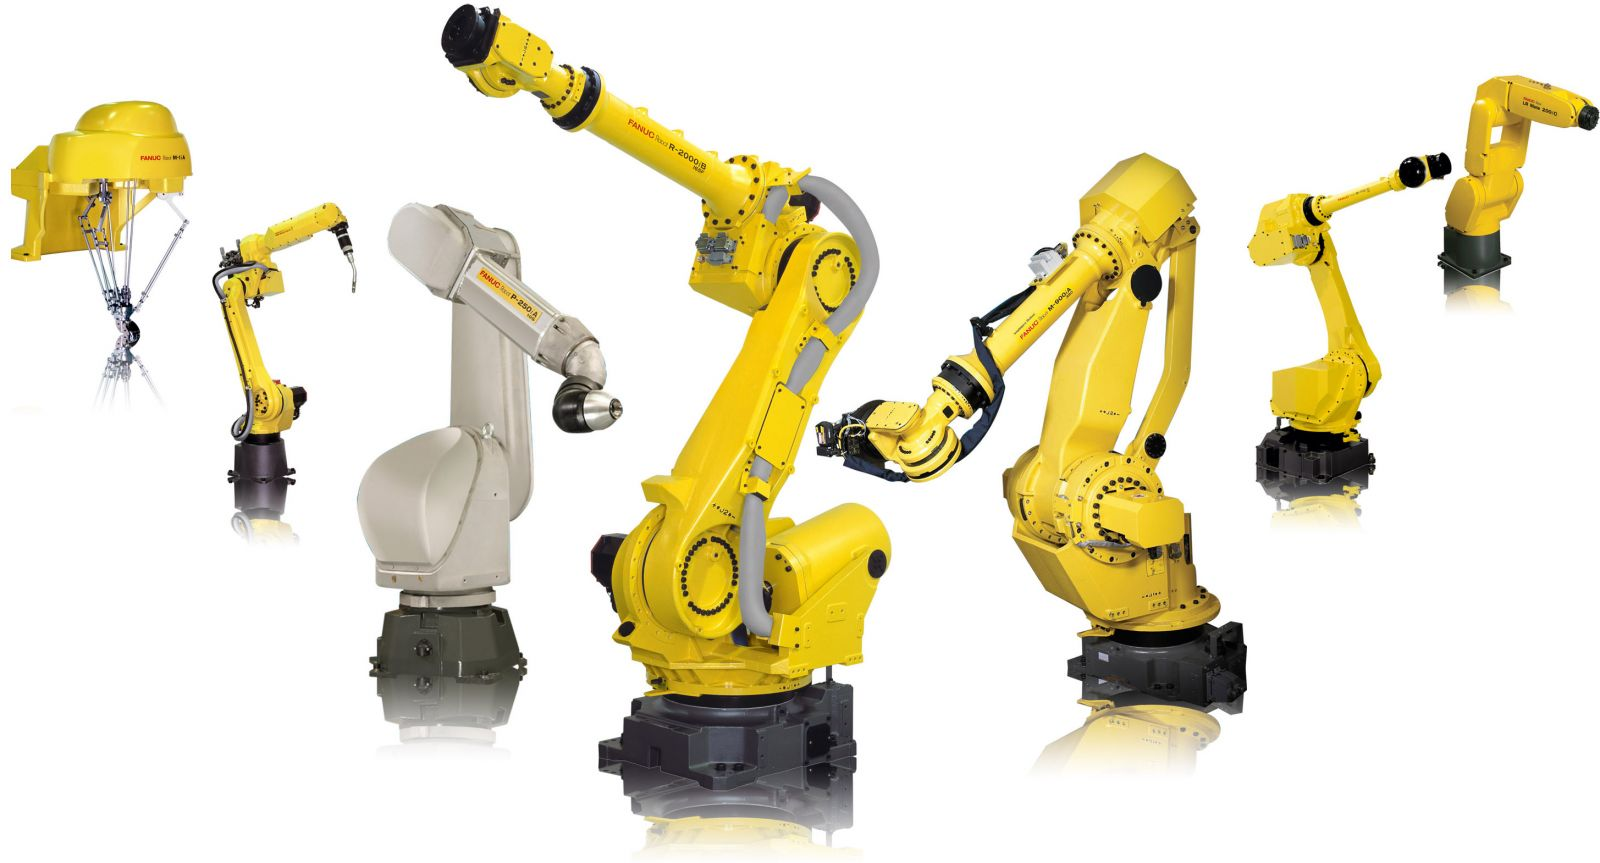 Top 14 industrial robot companies and how many robots they